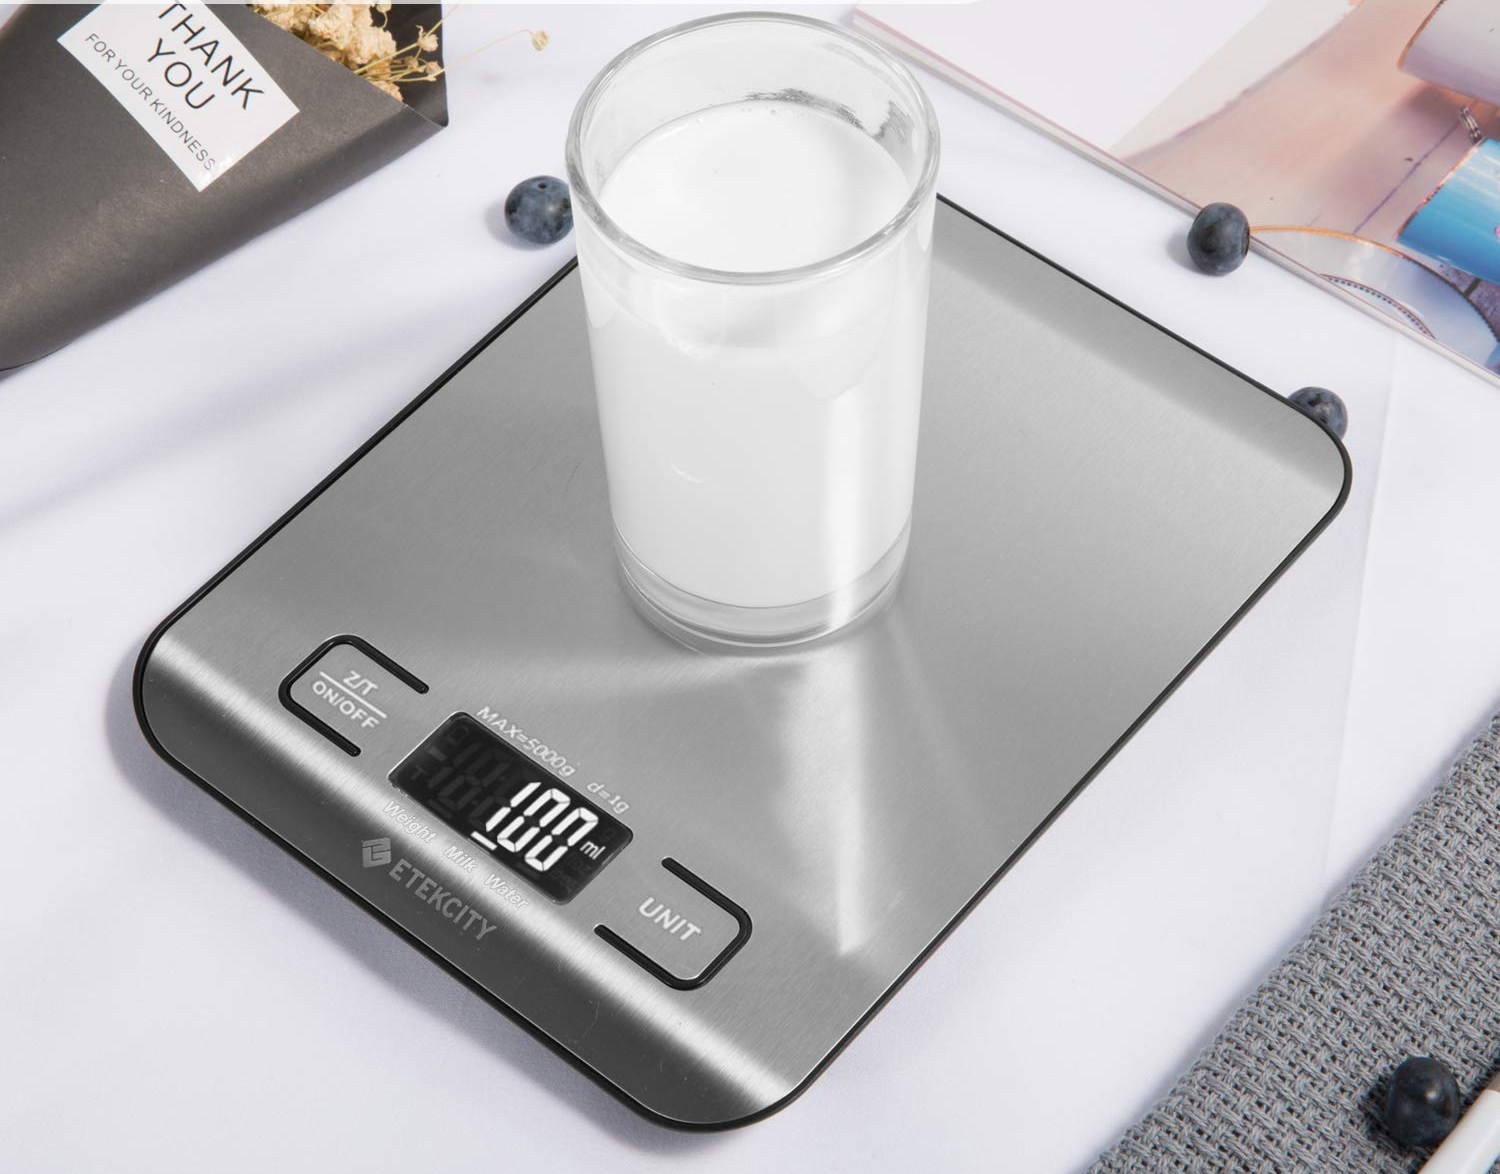 Etekcity Food Digital Kitchen Scale Weight Is Now On Sale At Amazon